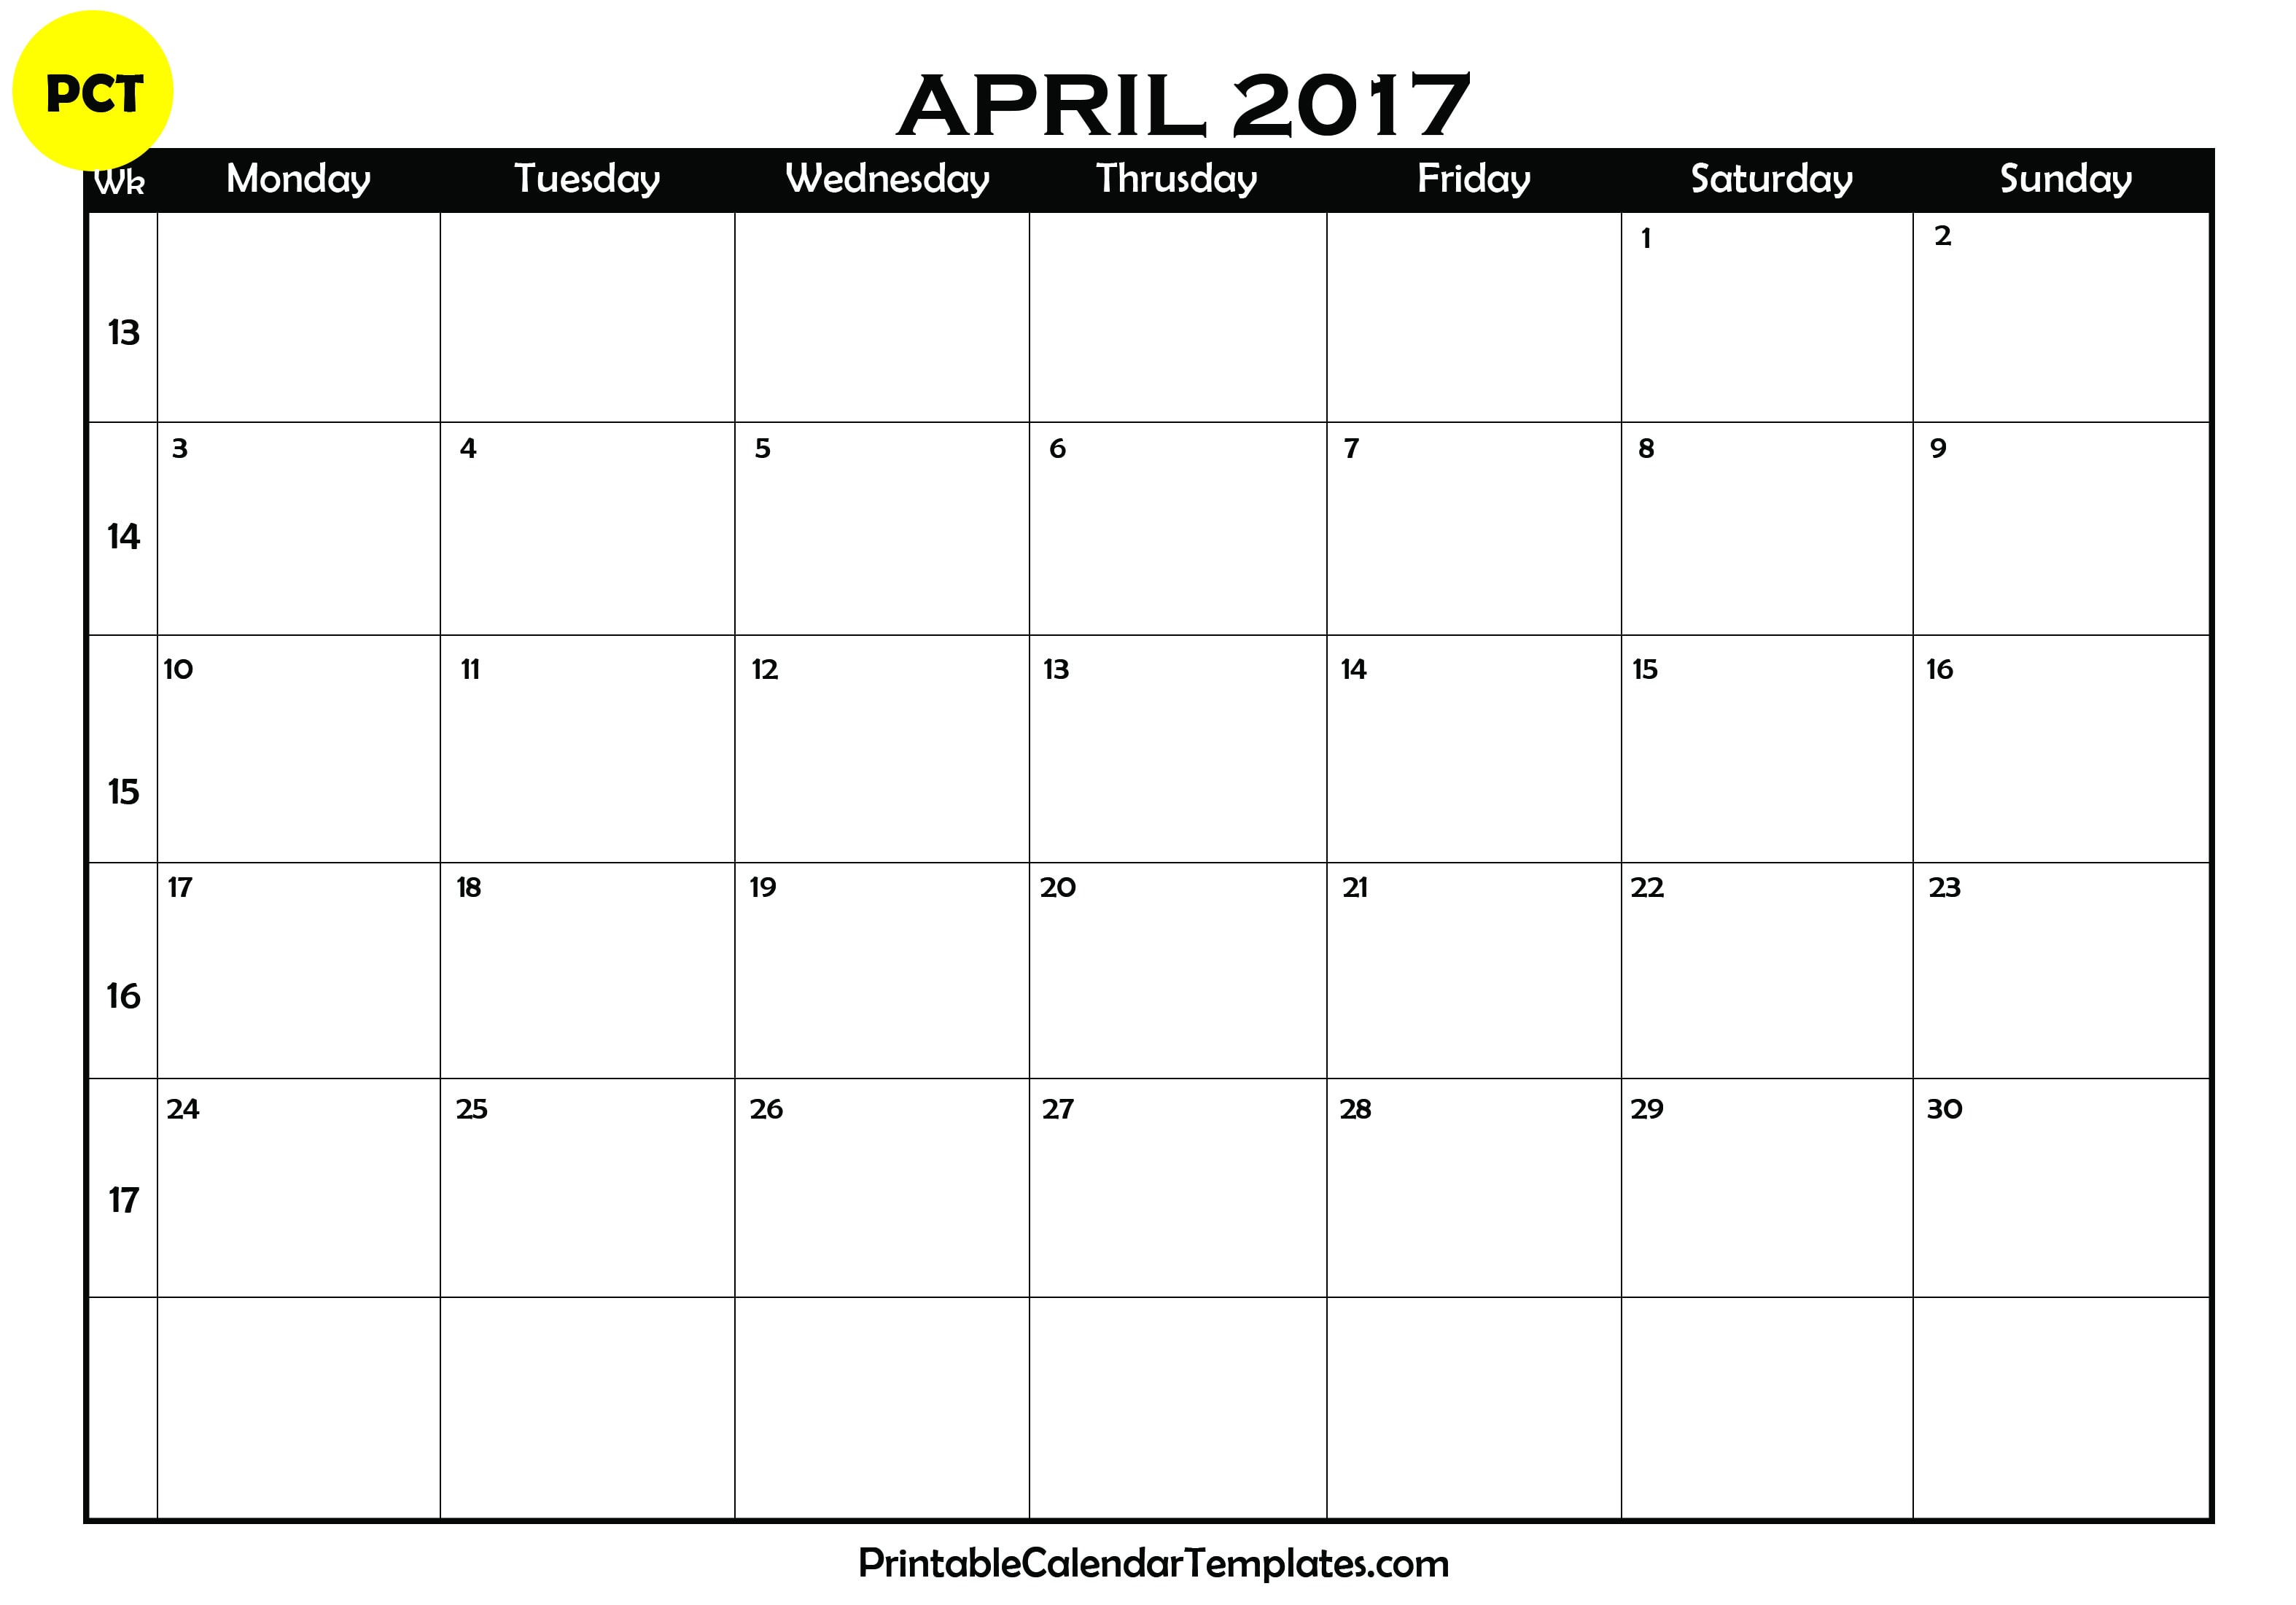 April 2017 calendar printable | Printable Calendar Templates